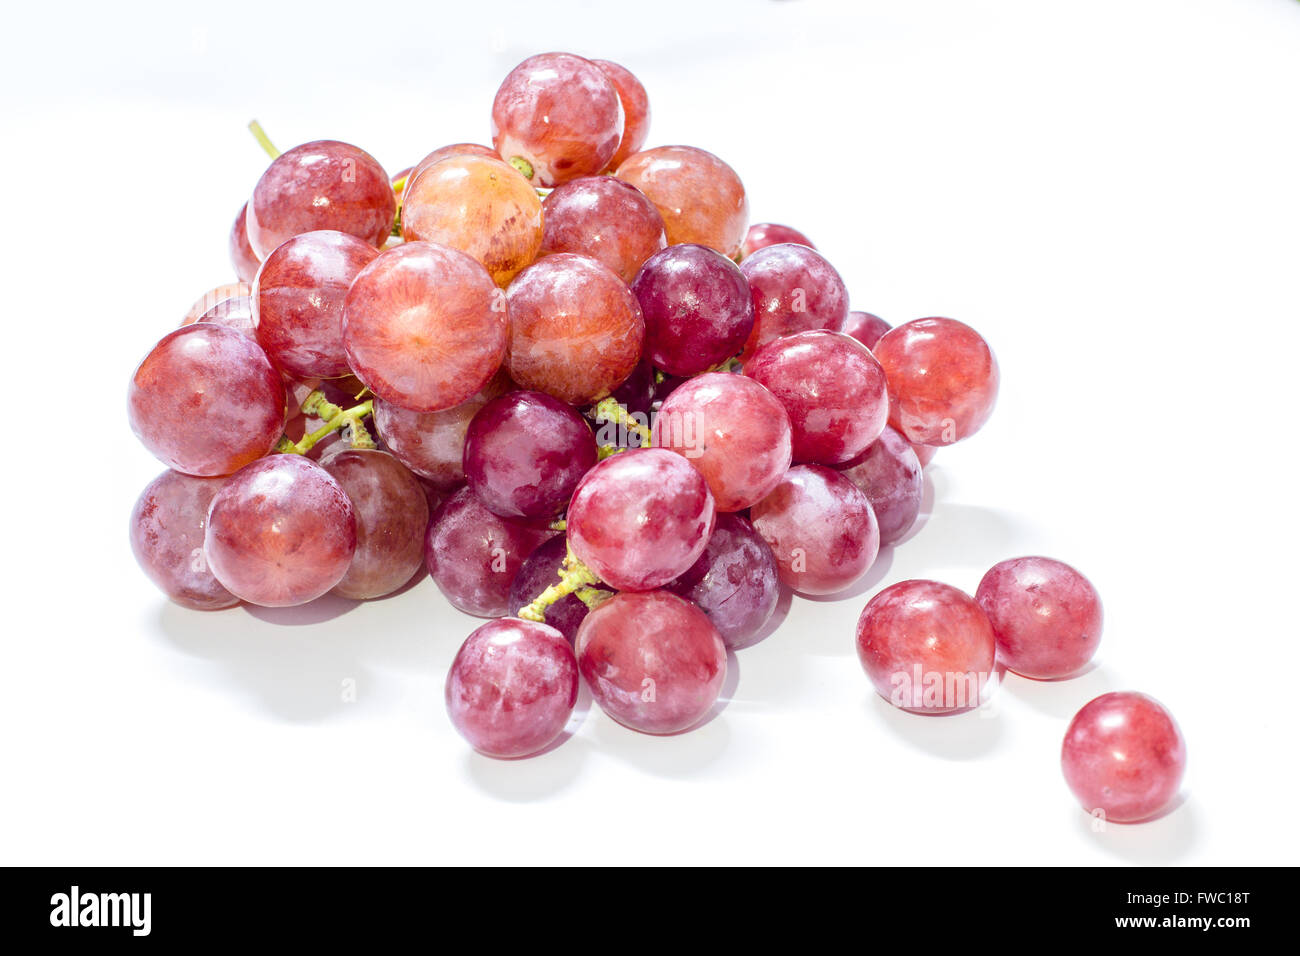 A bunch of fresh red grapes - Stock Image